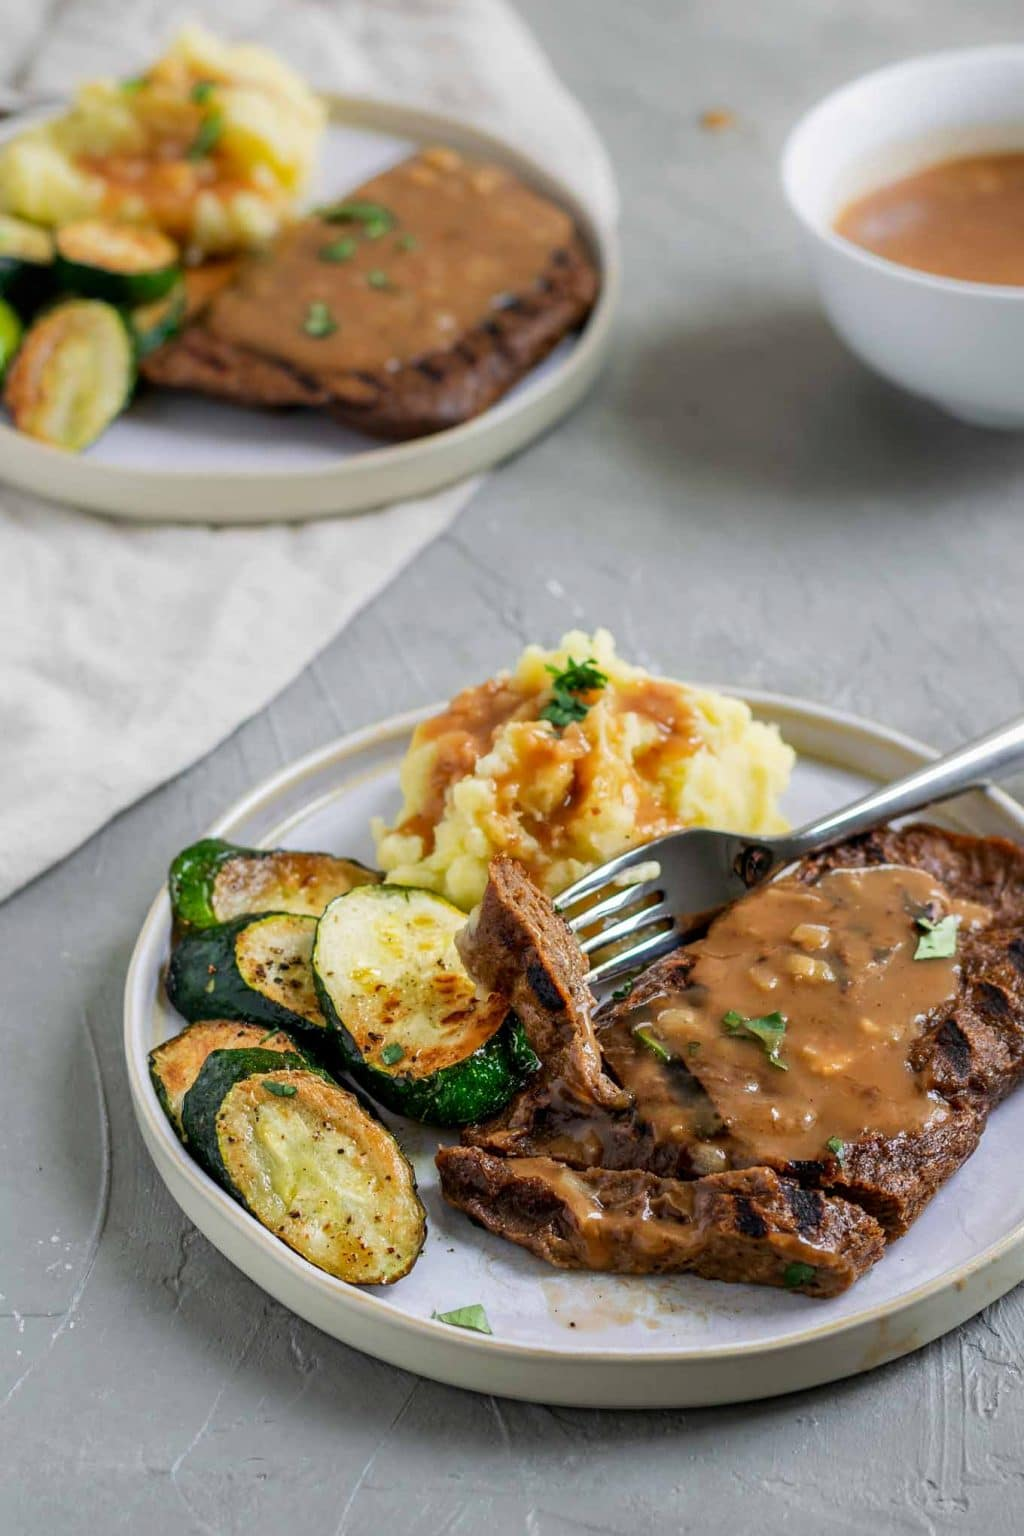 Grilled homemade seitan steaks with mashed potatoes and shallot gravy with a side of zucchini and a garnish of parsley. The steak is cut with one bite on a fork and there is extra gravy served on the side.